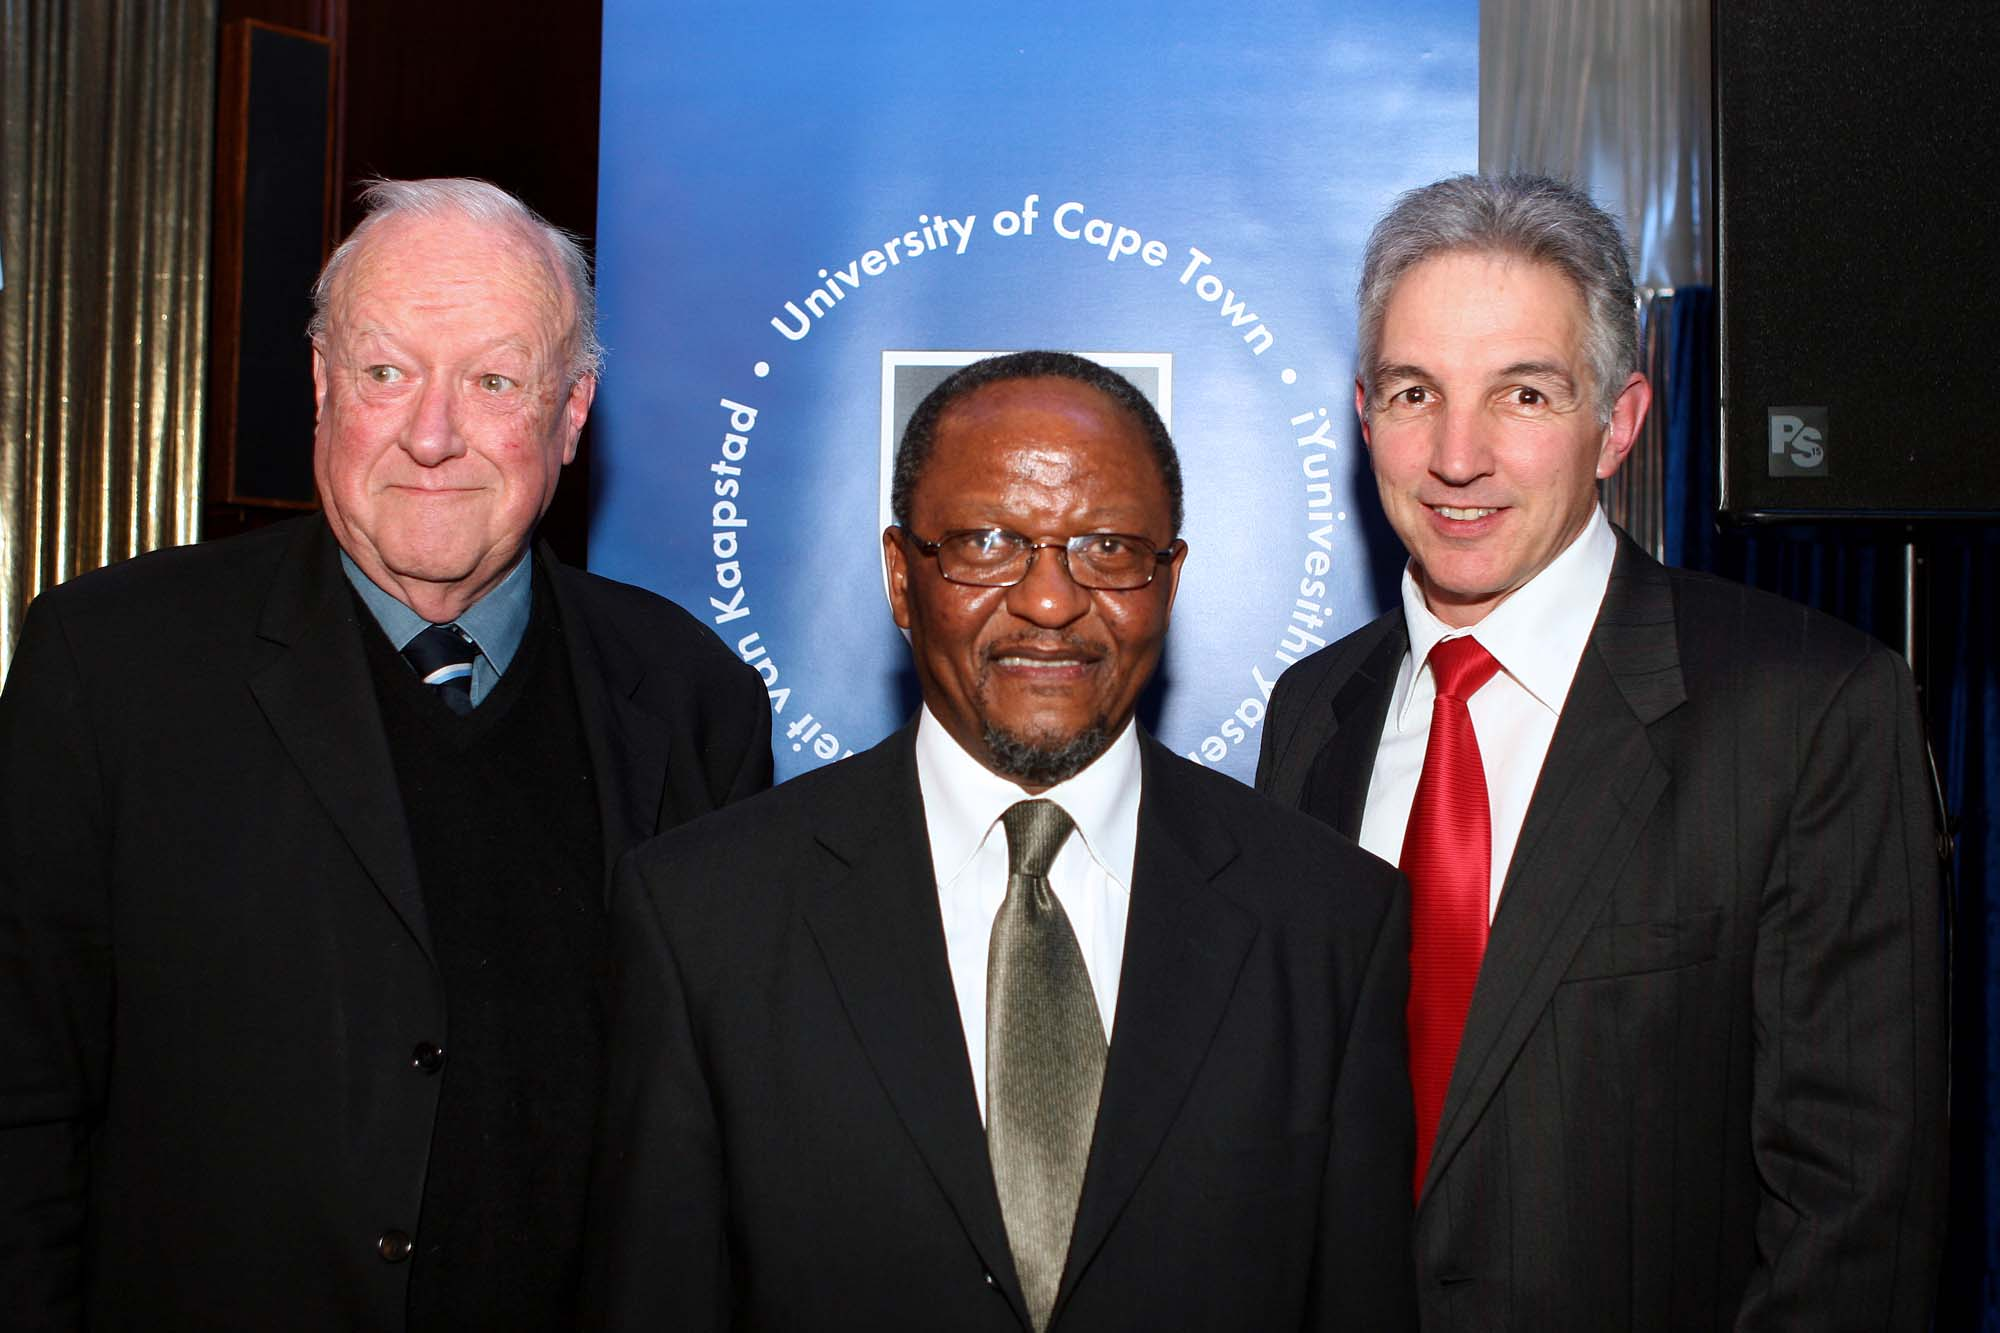 At the Students' Representative Council Centenary Dinner with Prof Njabulo S Ndebele and Dr Max Price in 2008.